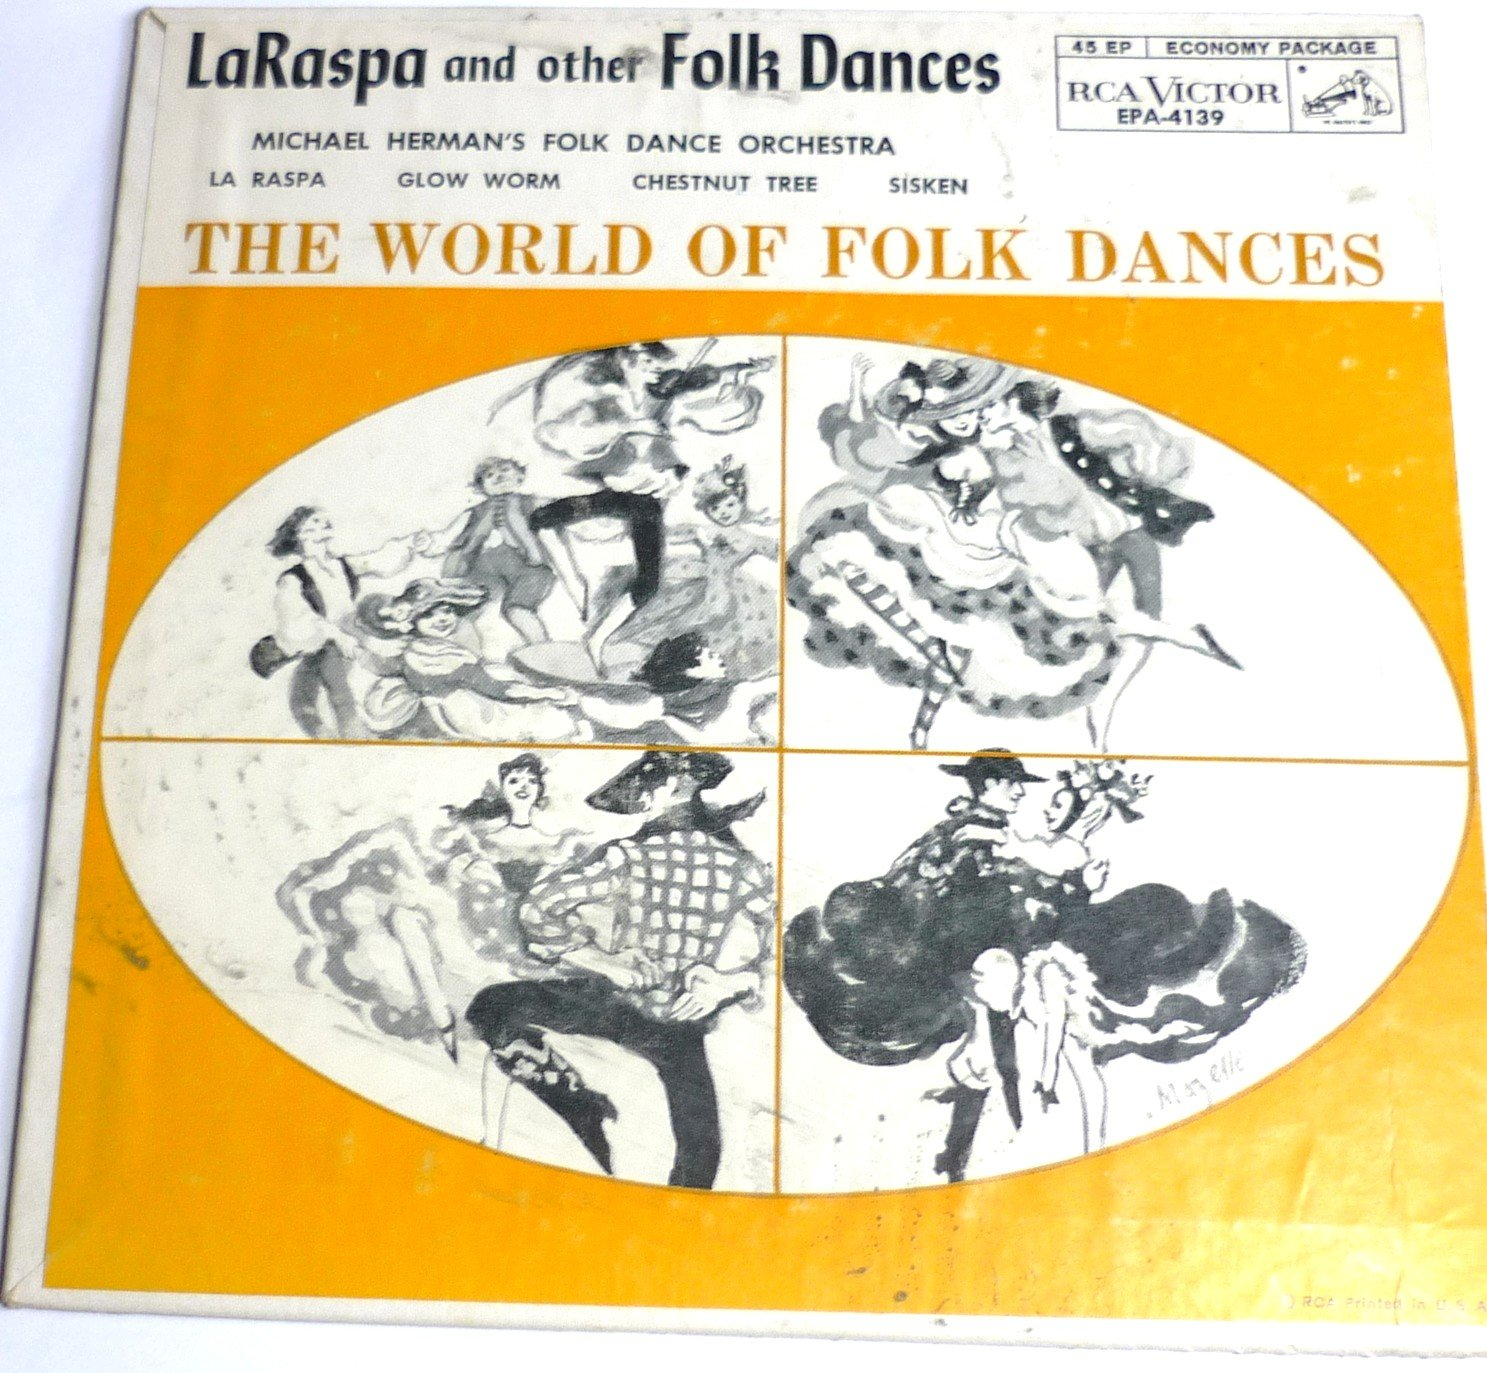 LaRaspa and other Folk Dances - 45 EP Record - Michael Herman